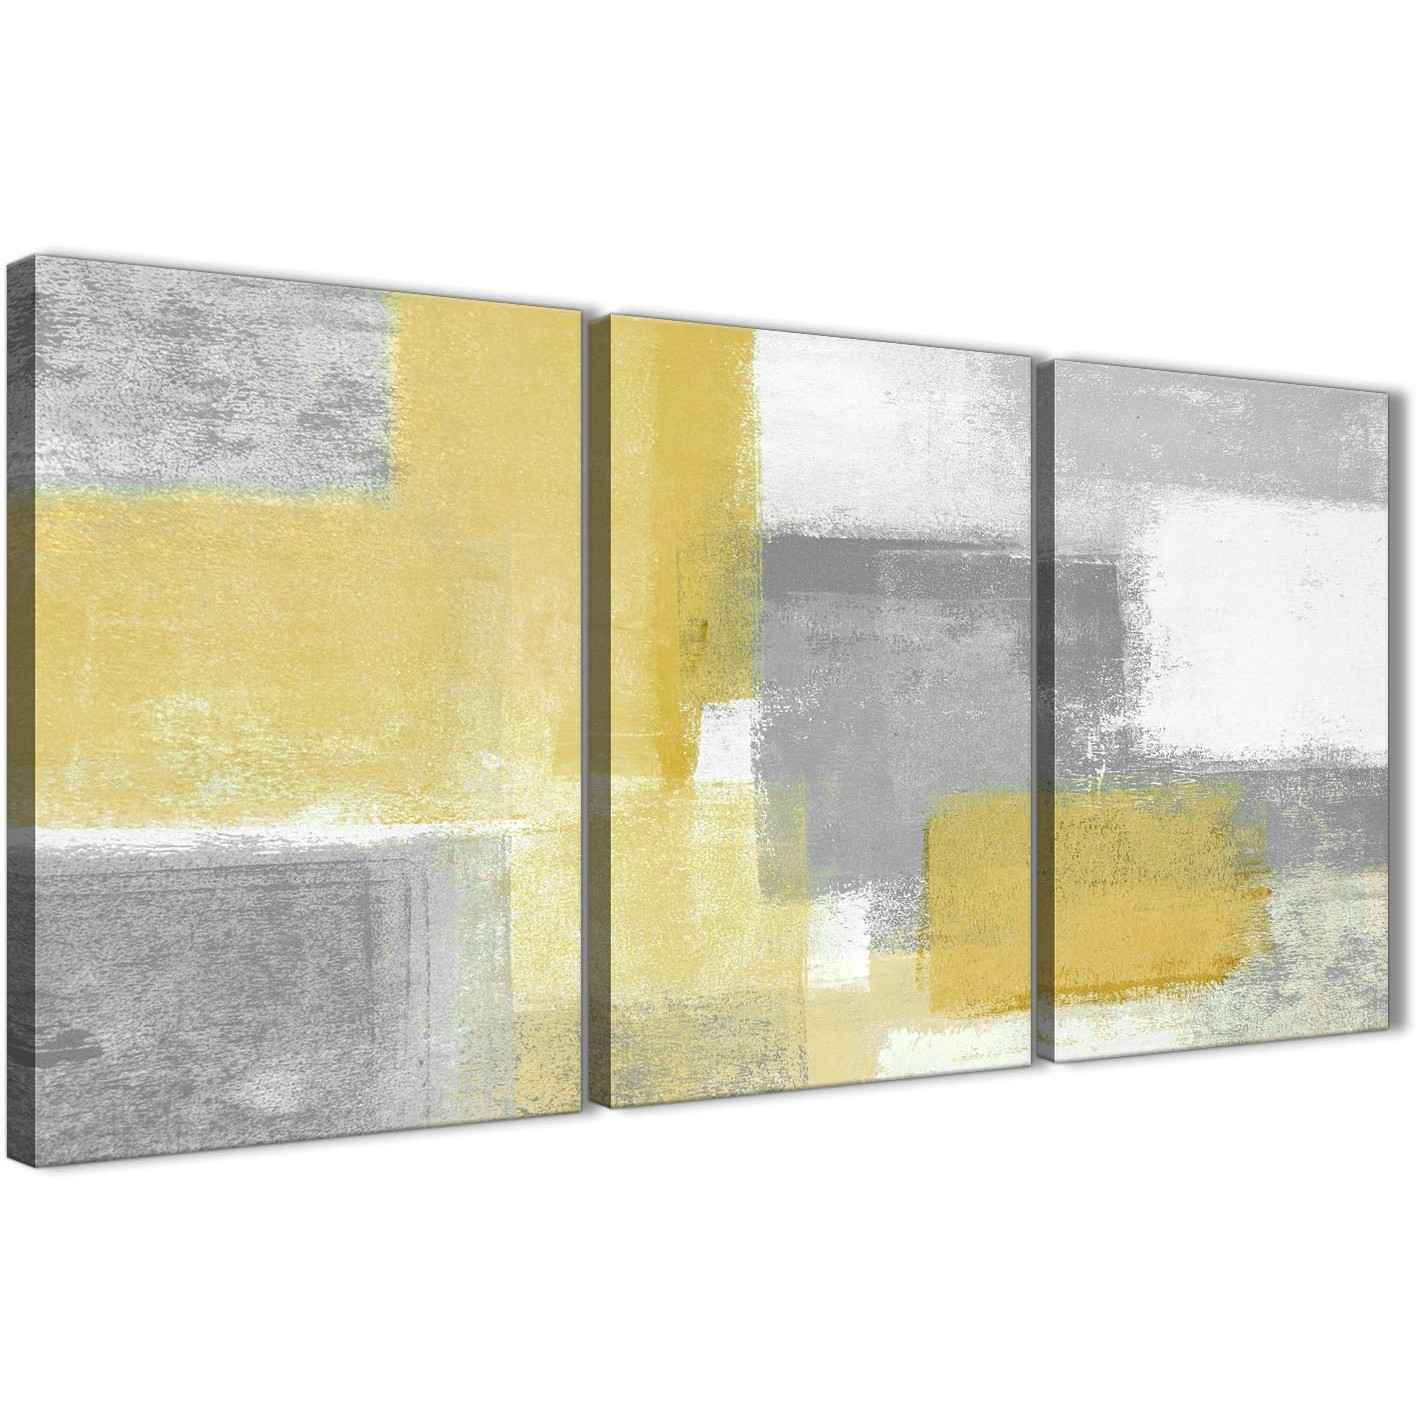 3 Panel Mustard Yellow Grey Kitchen Canvas Wall Art Decor – Abstract Regarding Newest Yellow Wall Art (View 1 of 20)